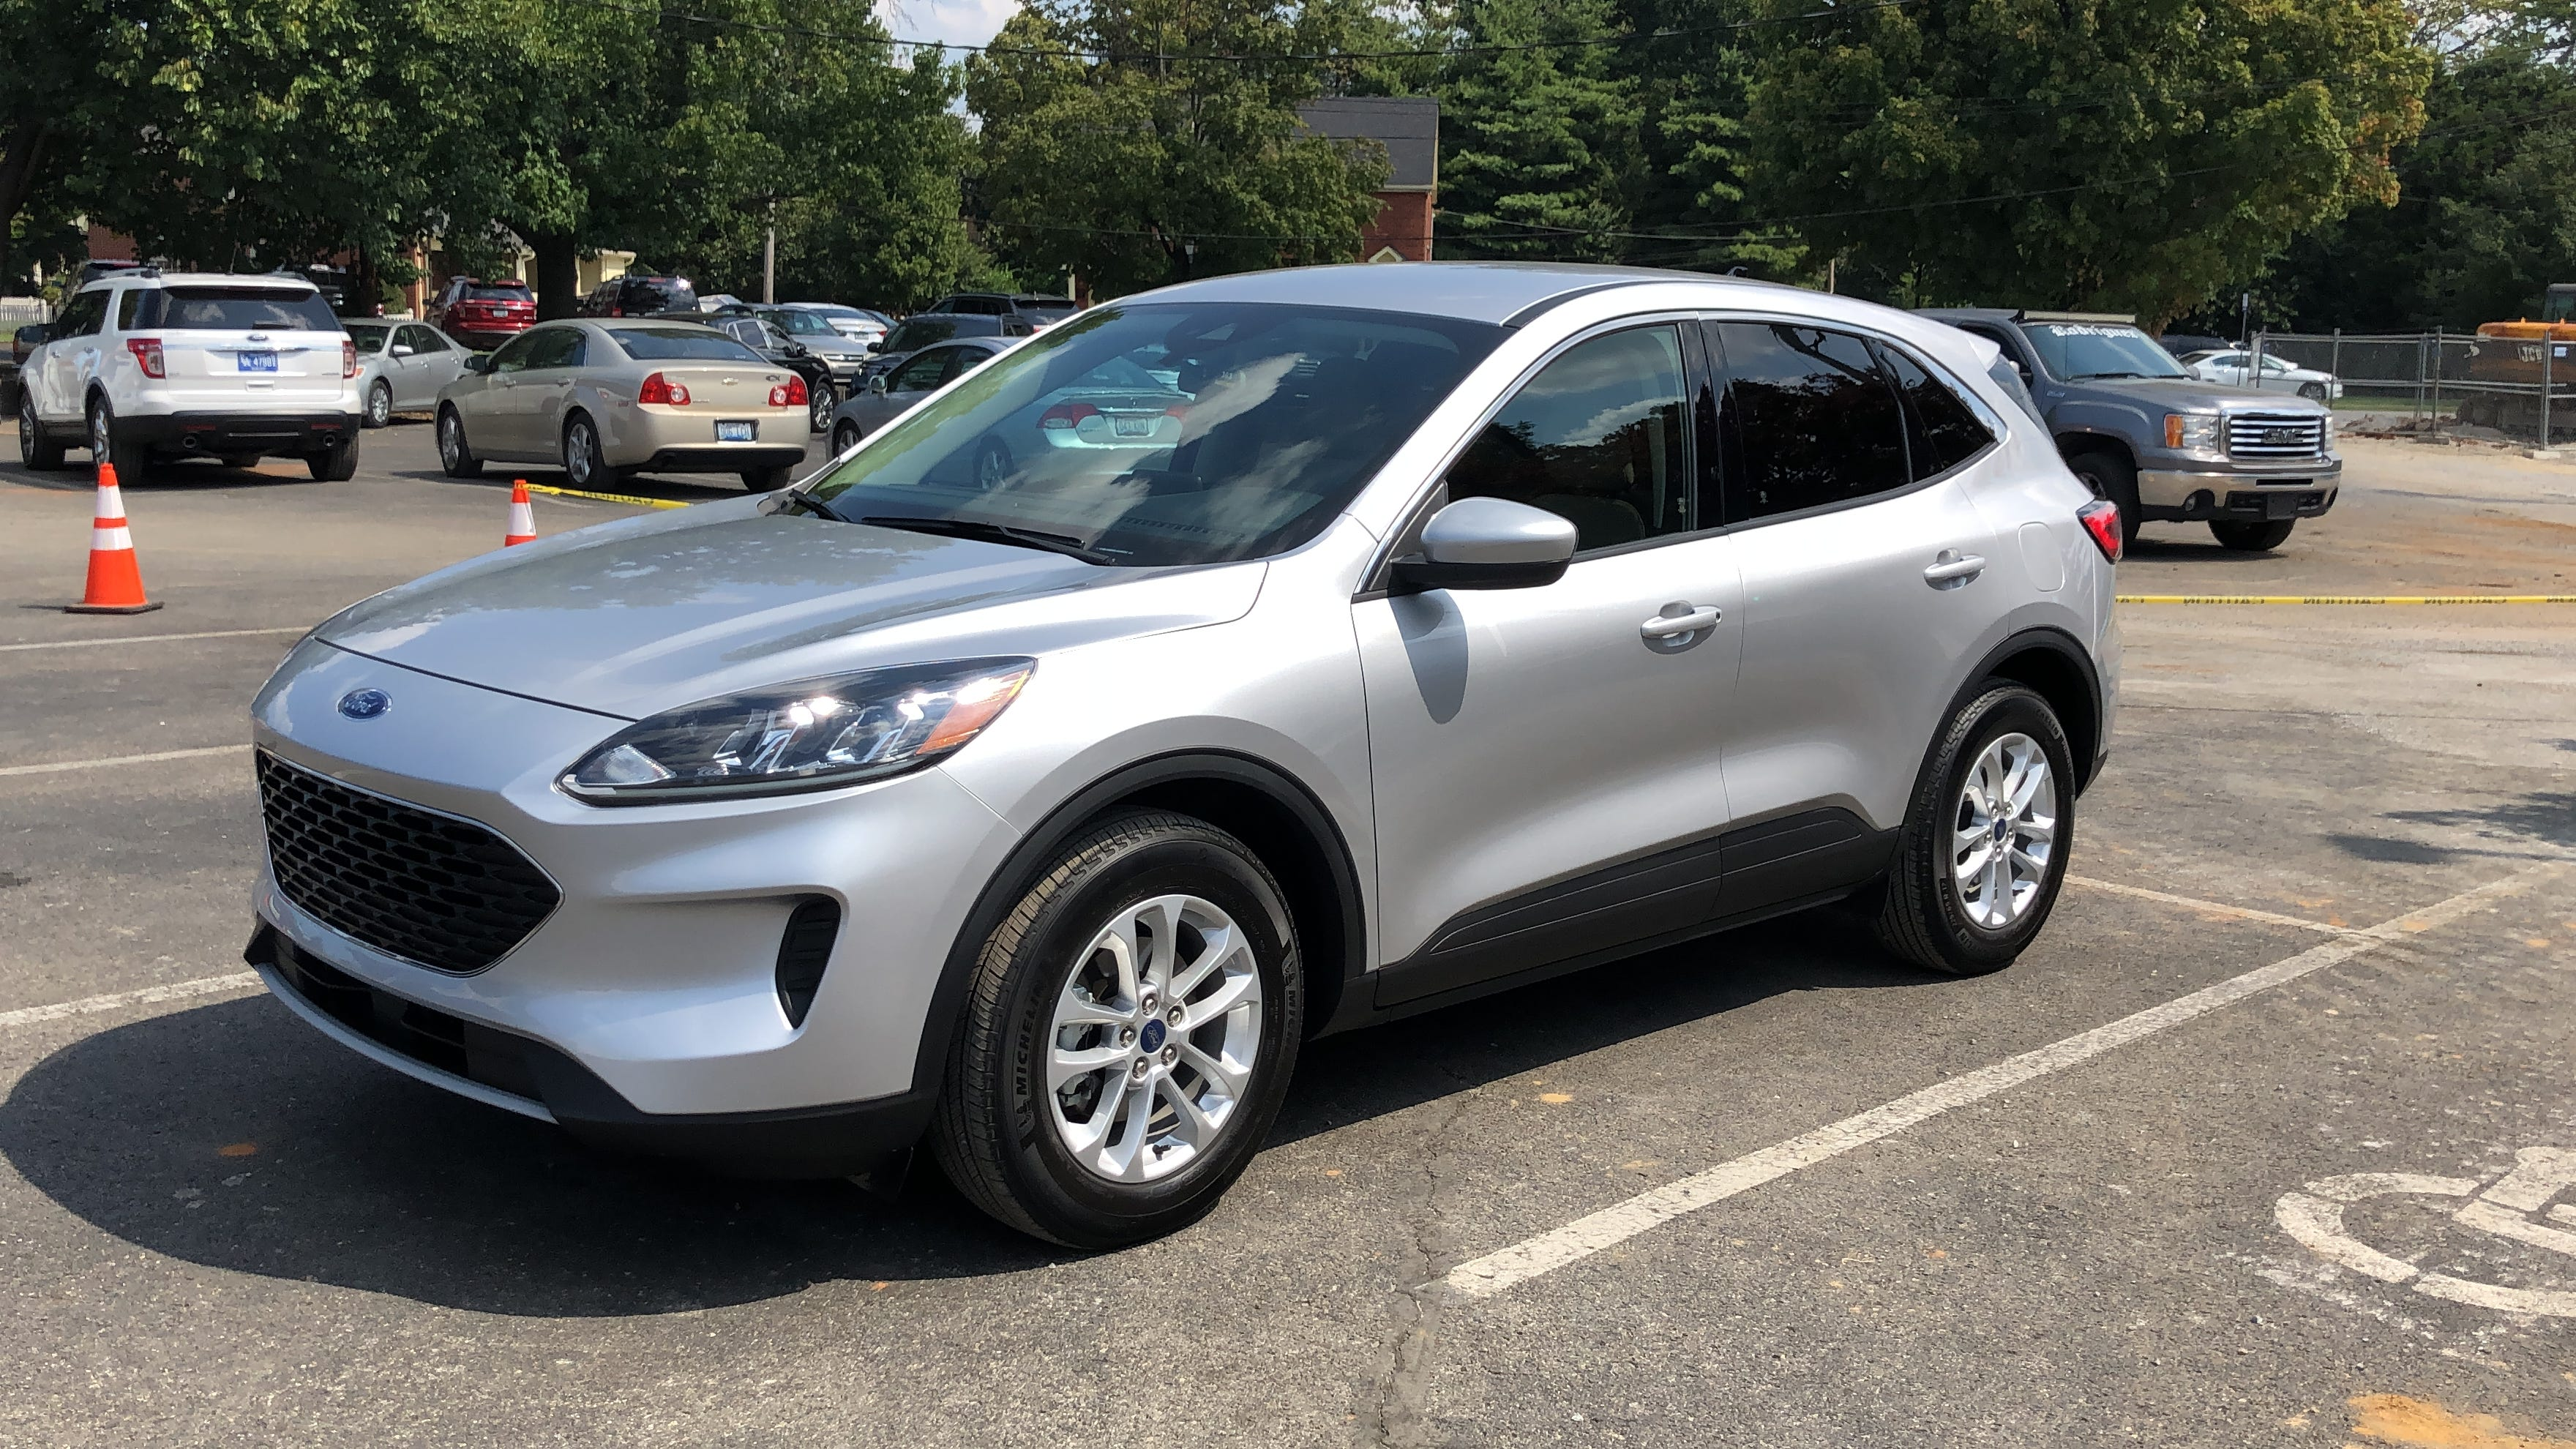 Ford Hybrid Suv >> 2020 Ford Escape Review Buyers Will Love Hybrid Features